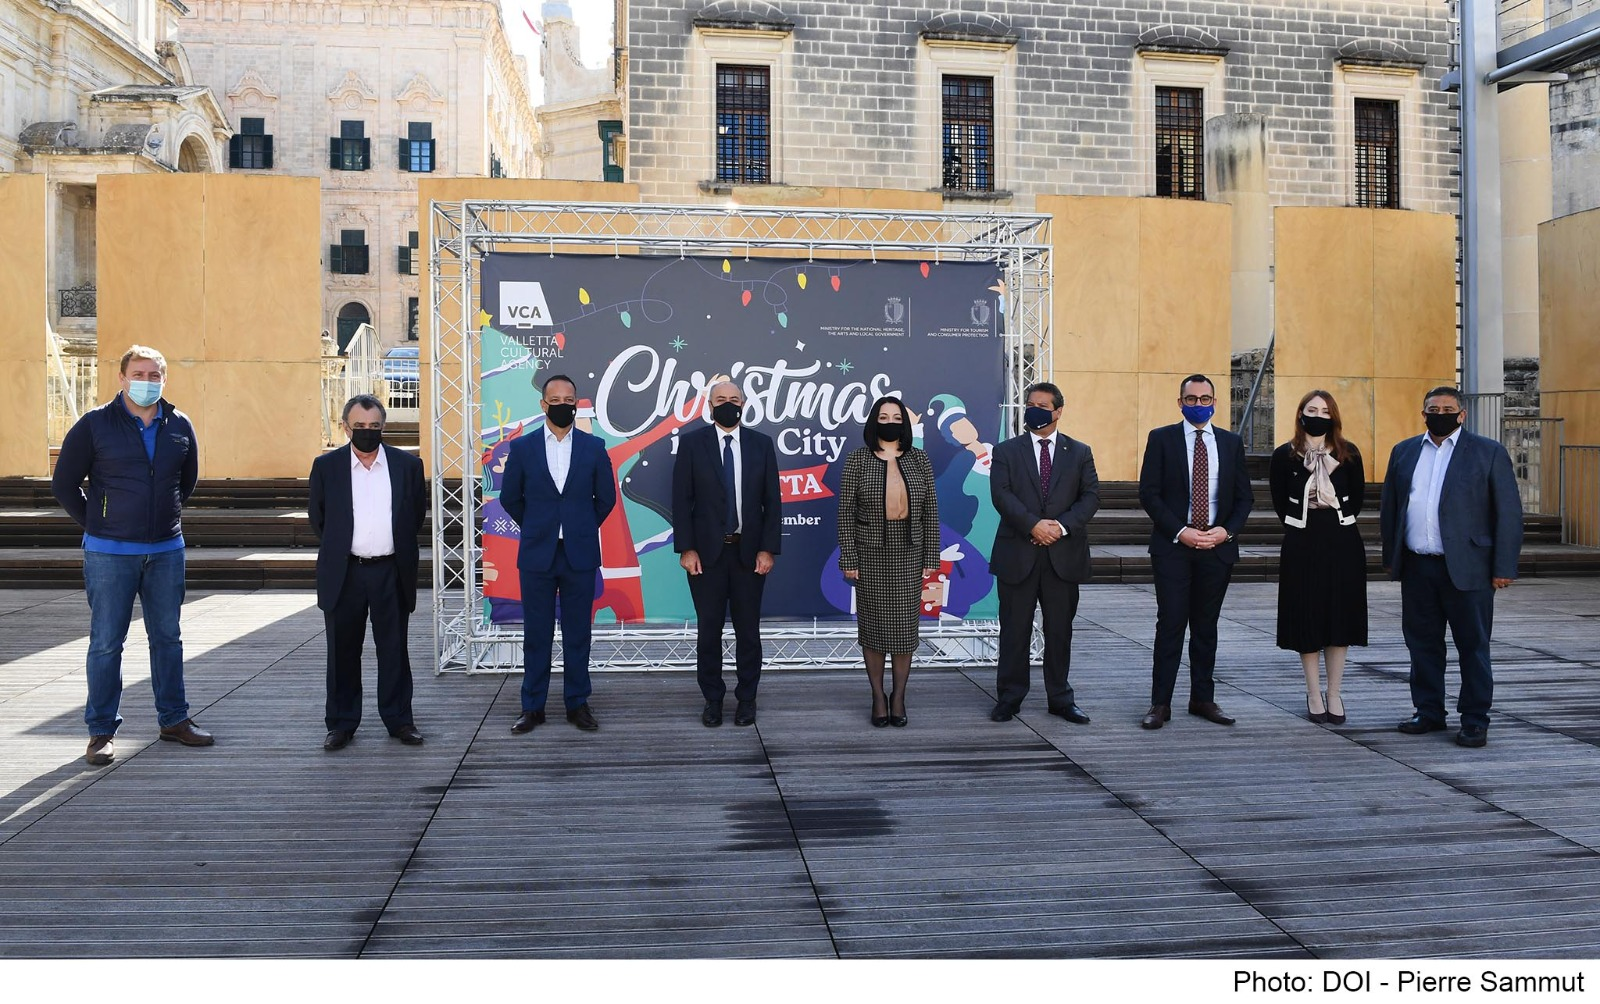 PRESS RELEASE BY THE MINISTRY FOR TOURISM AND CONSUMER PROTECTION AND THE MINISTRY FOR NATIONAL HERITAGE, THE ARTS AND LOCAL GOVERNMENT  Launch of Christmas in the City